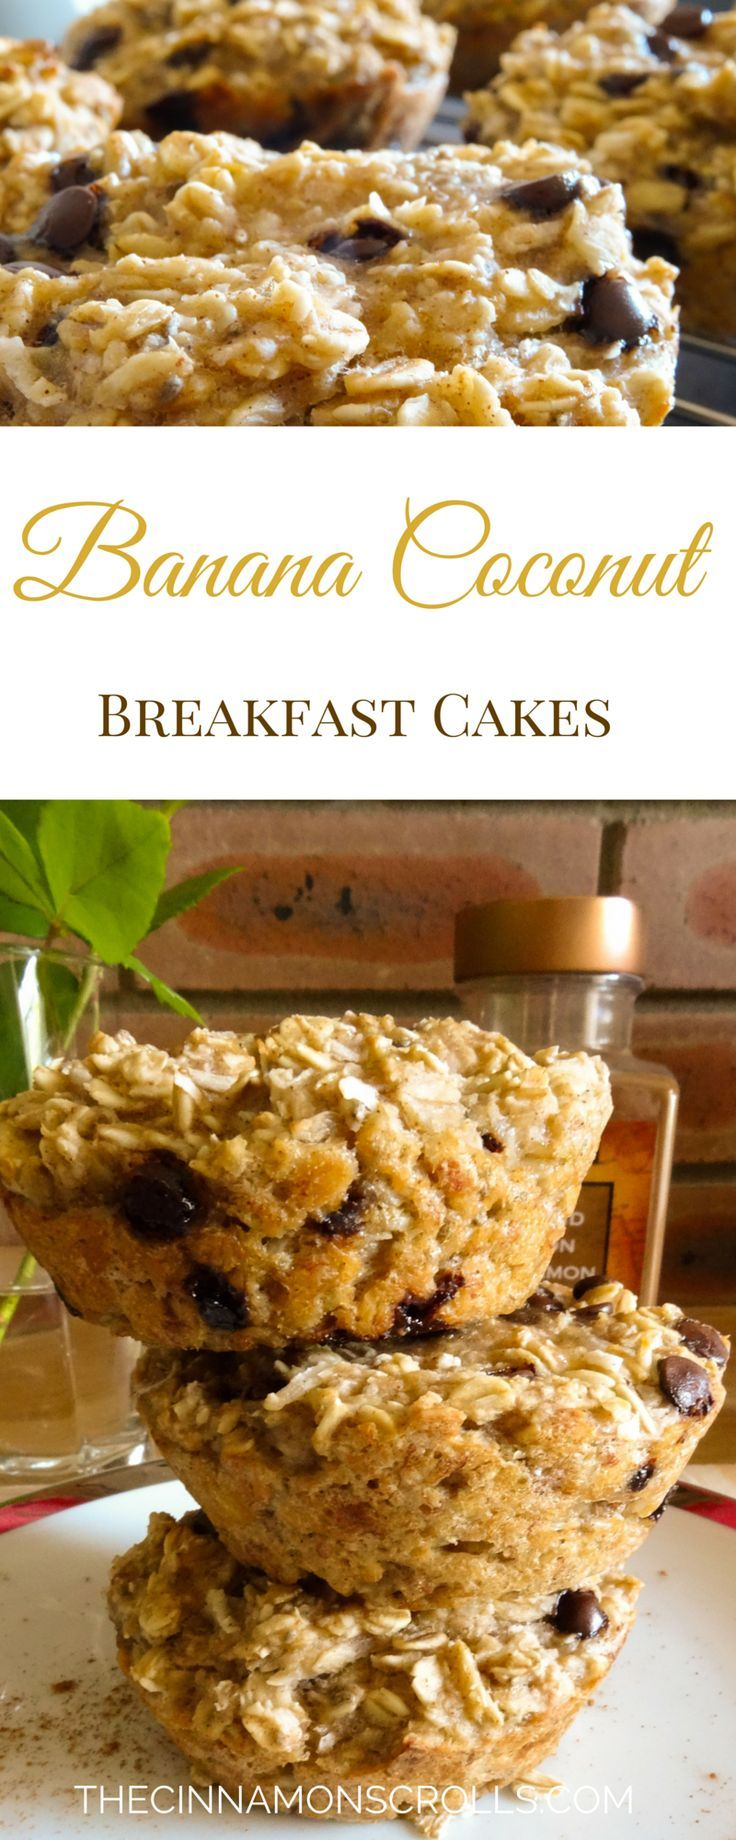 These breakfast cakes are loaded with fibre, protein, and omega-3's from the chia seeds. They're a perfect start to your day, especially if you're making a mad dash for the door... | thecinnamonscrolls.com @cinnamonscribe